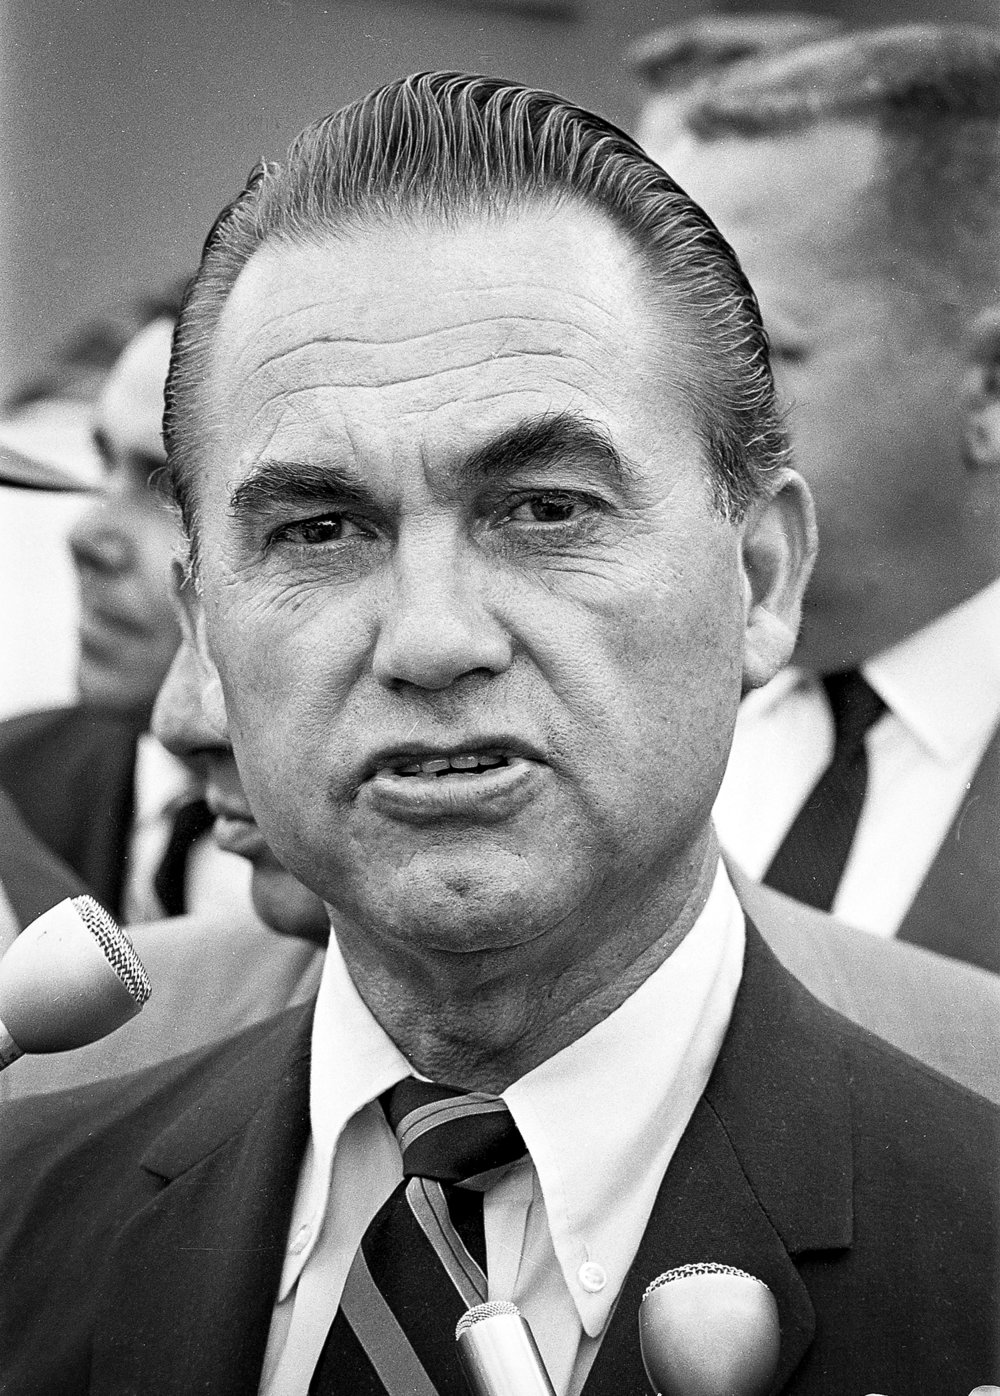 Former Alabama Gov. George Wallace makes a stop in Springfield Sept. 12, 1968 to campaign for president as independent. File/The State Journal-Register